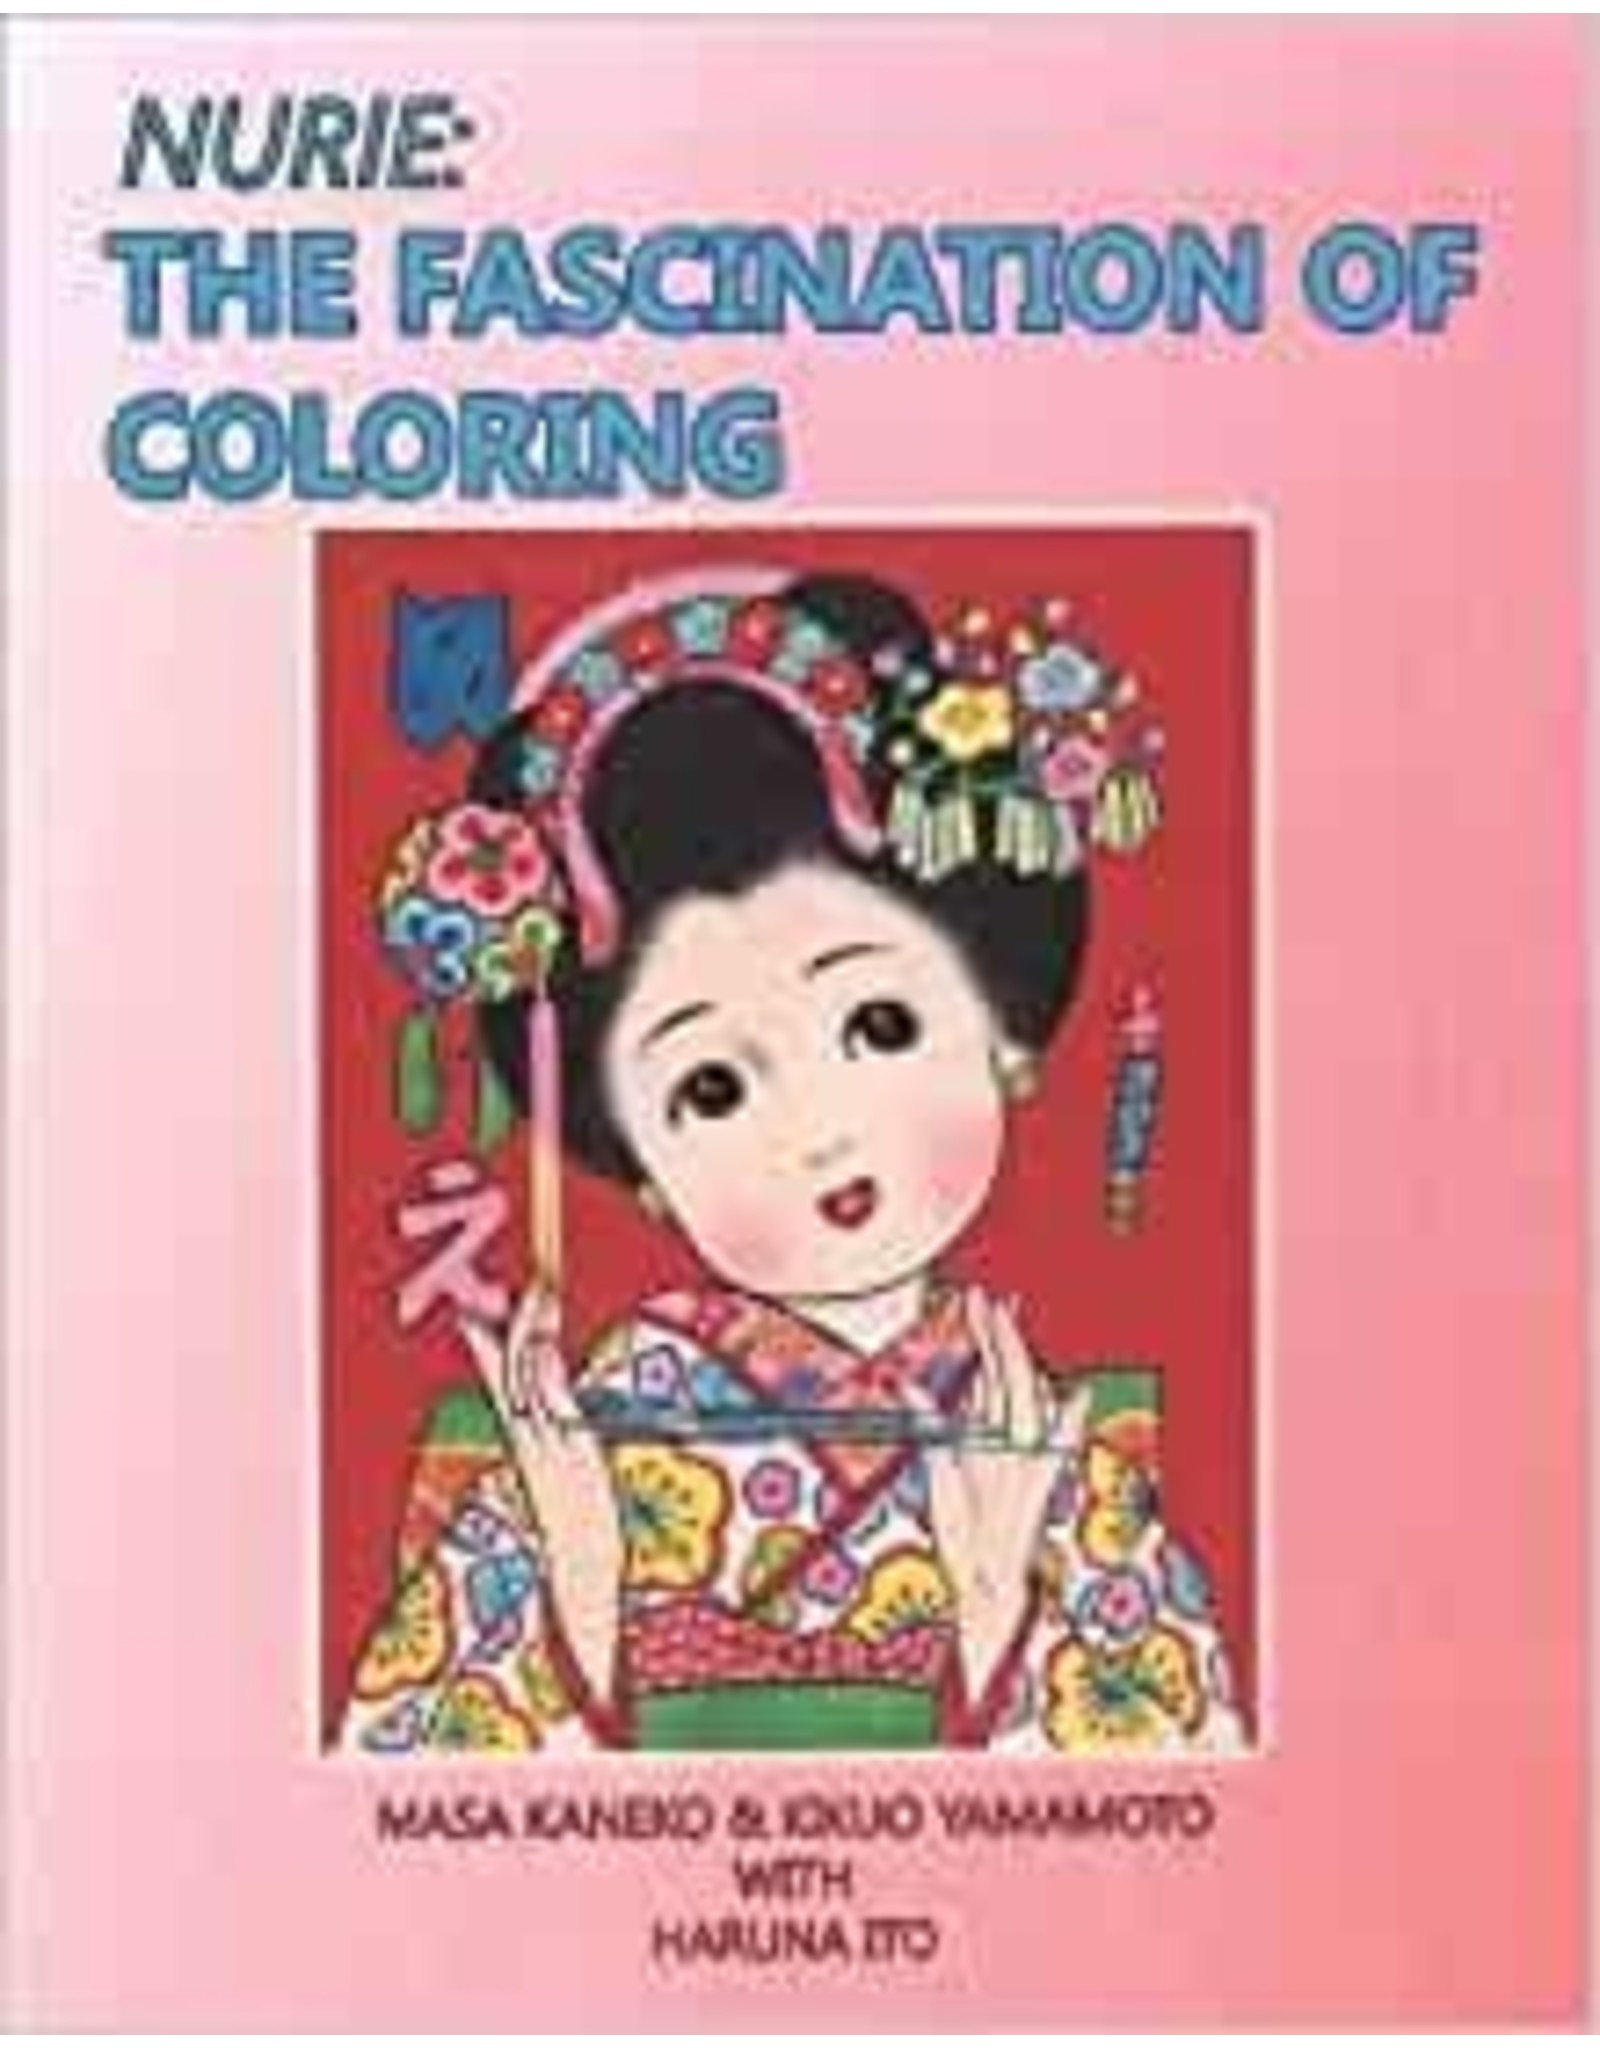 NURIE: THE FASCINATION OF COLORING